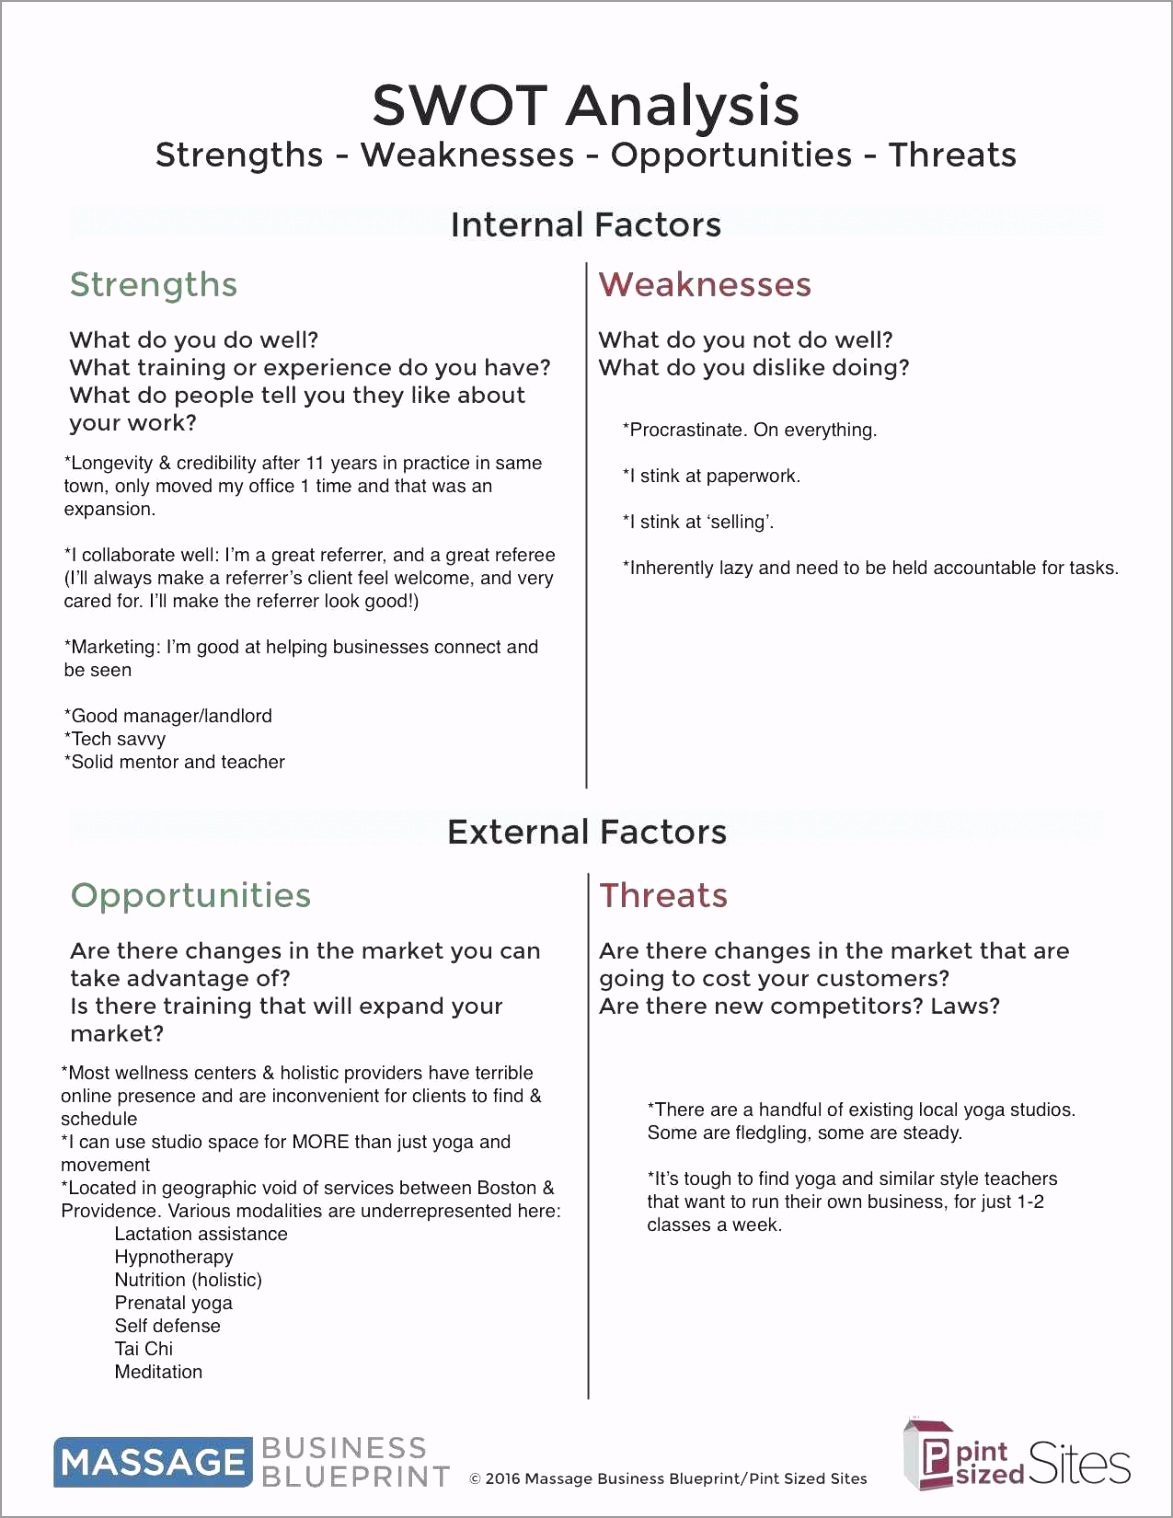 market swot analysis then c2a2ec286a resume 46 lovely swot template hd sample otazc